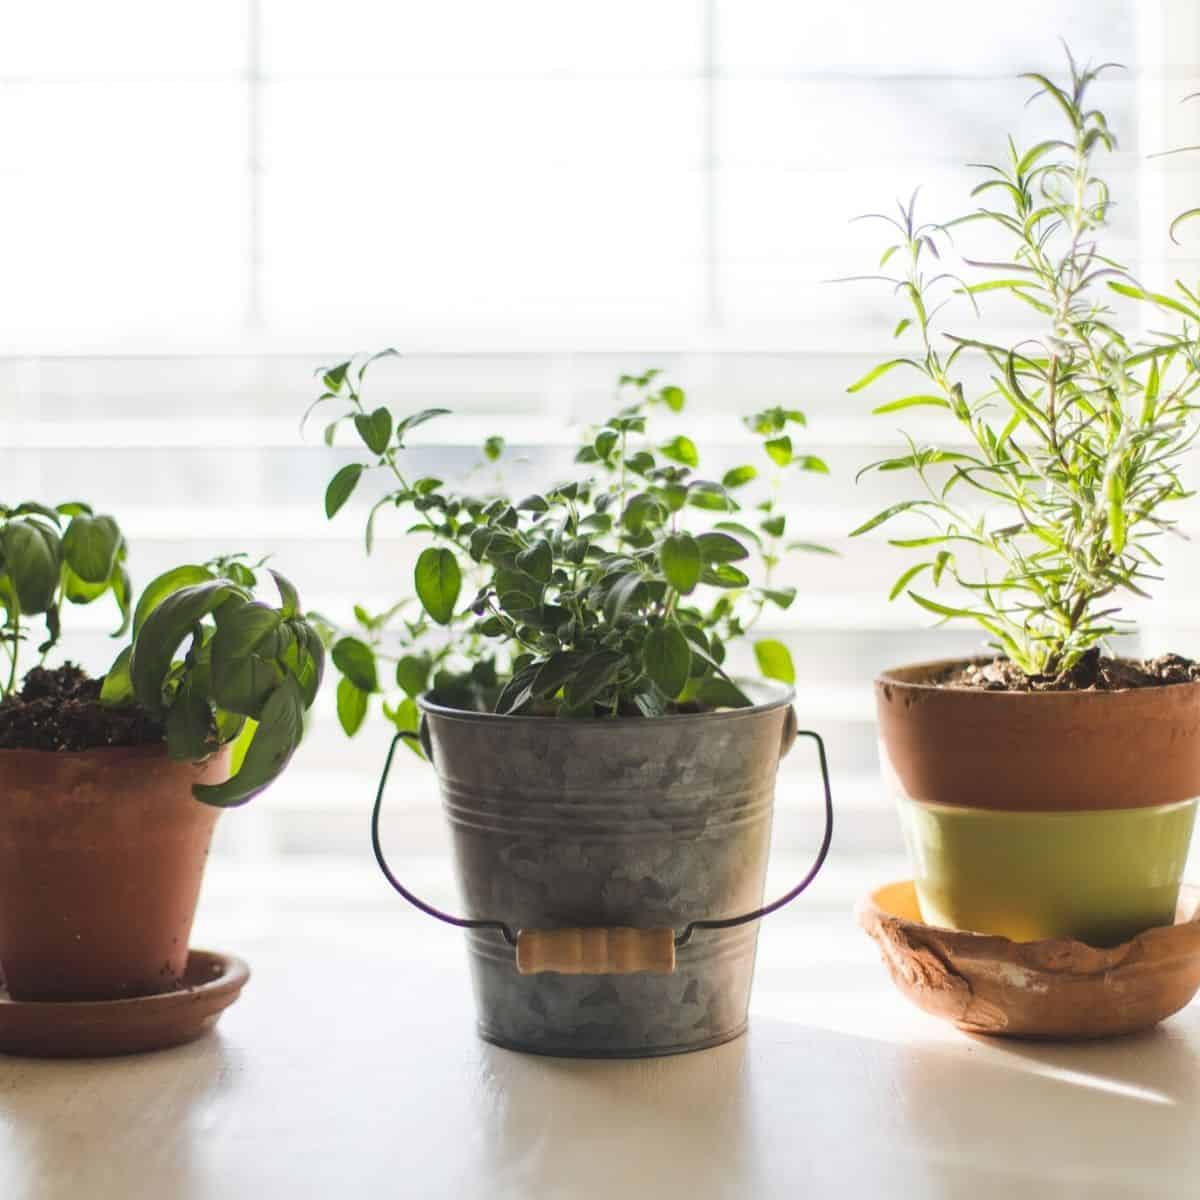 gardening  while being financially independent retired early